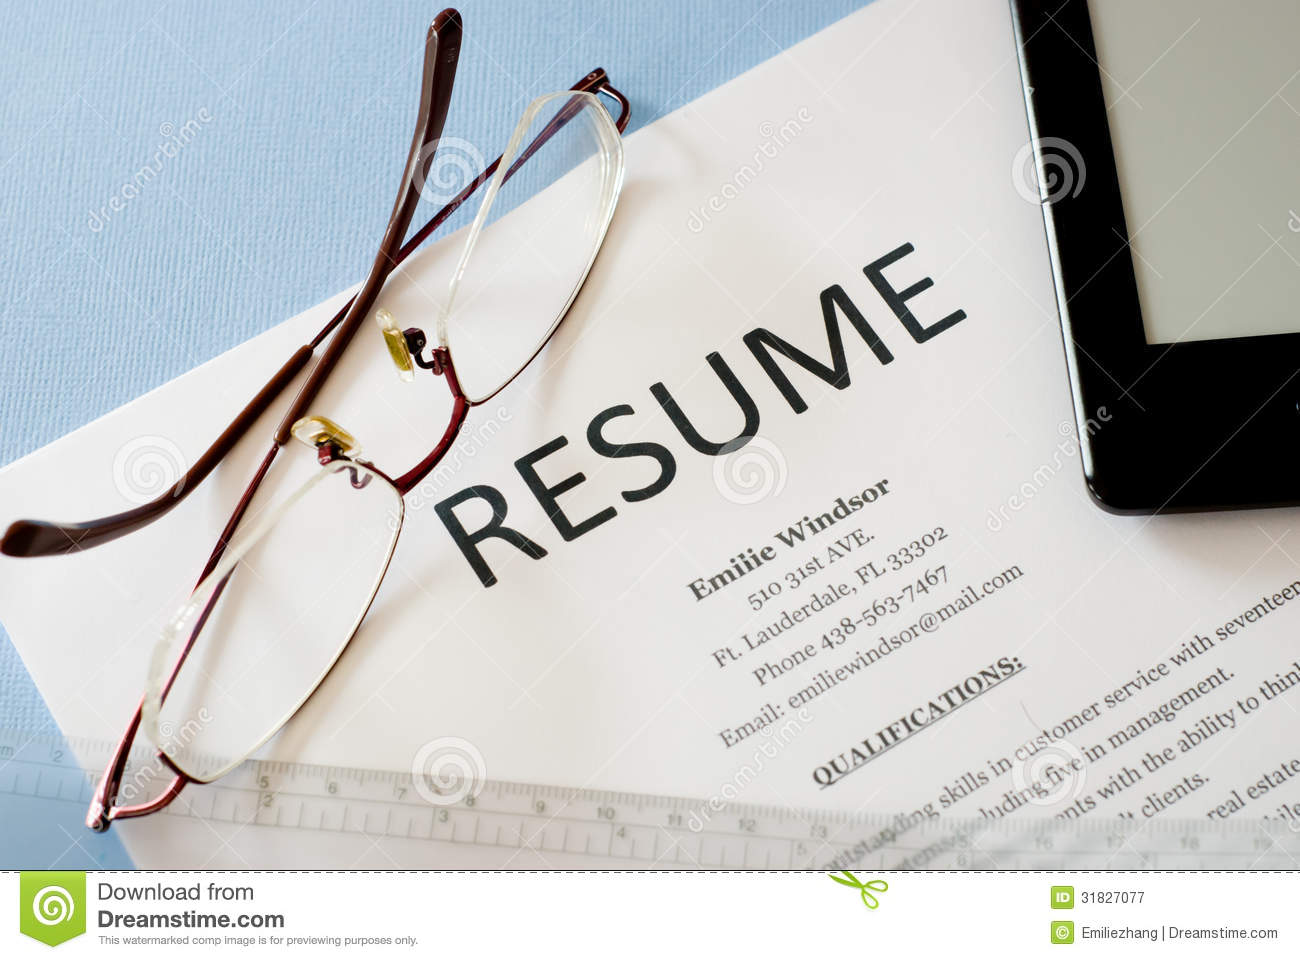 resume stock image of employ search application free photos blue background job concept Resume Free Stock Photos Resume